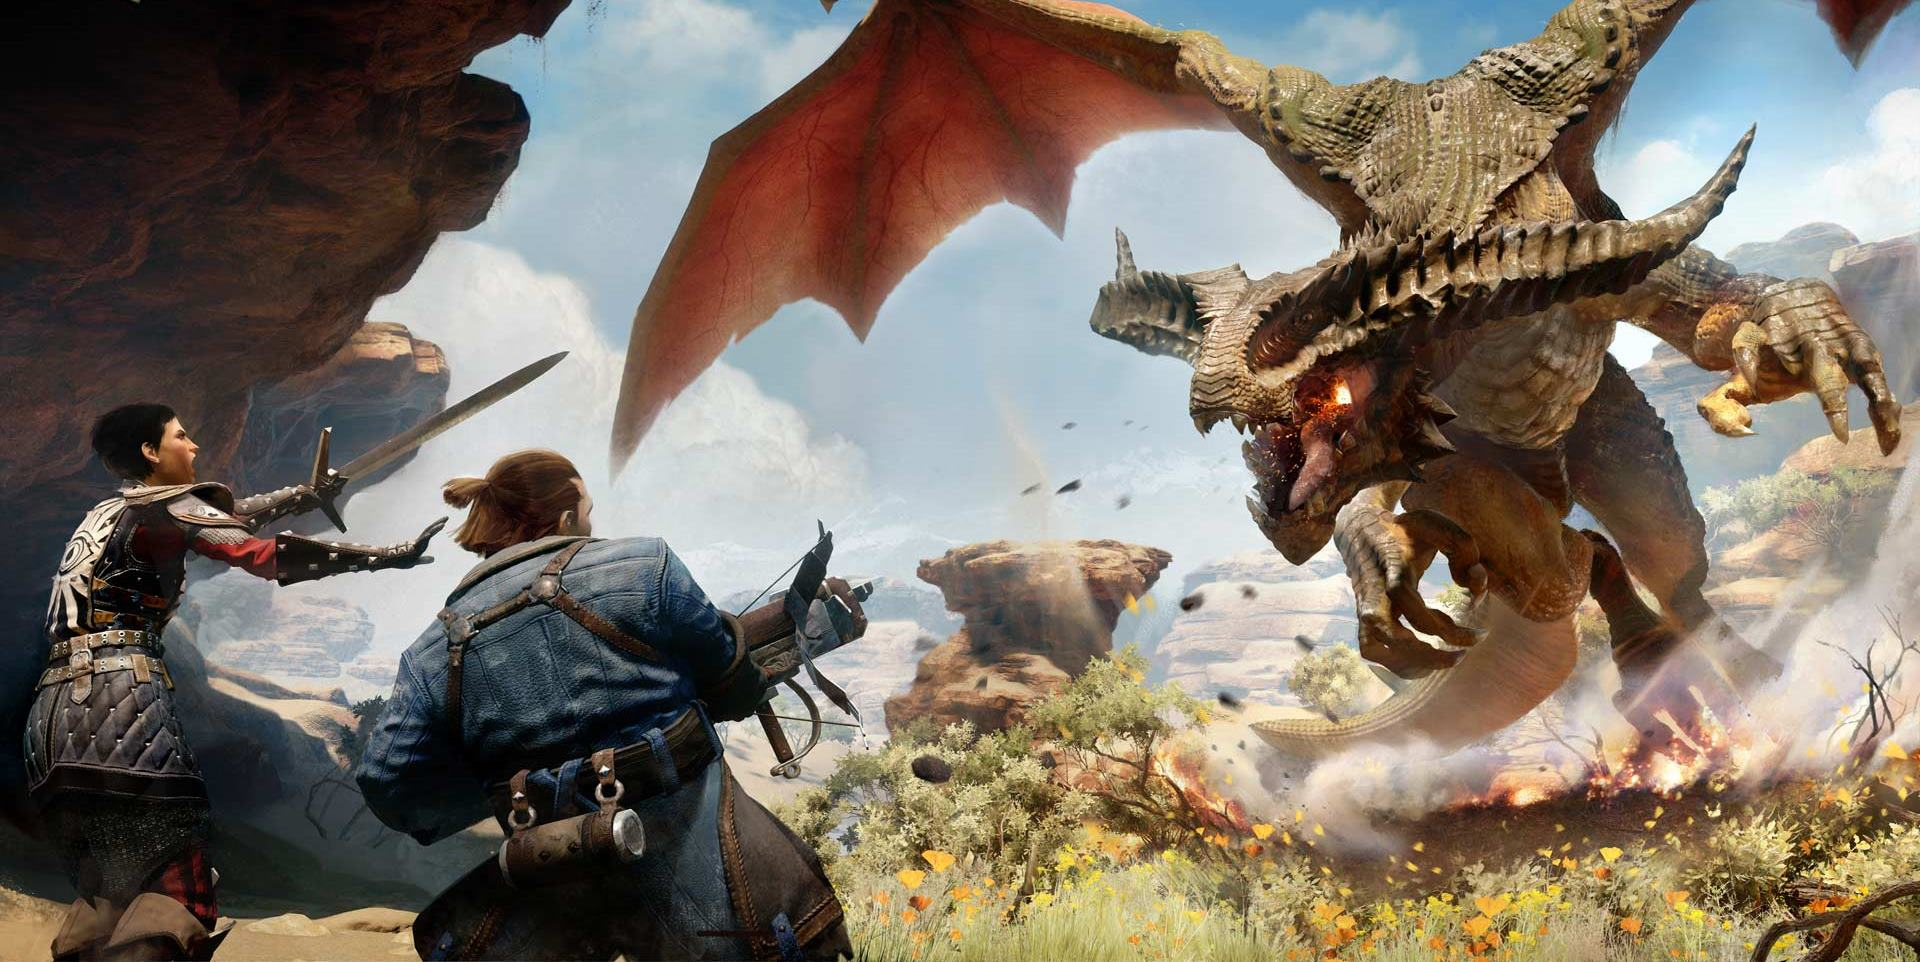 Dragon Age: Inquisition, all platforms, $45 a pop right now